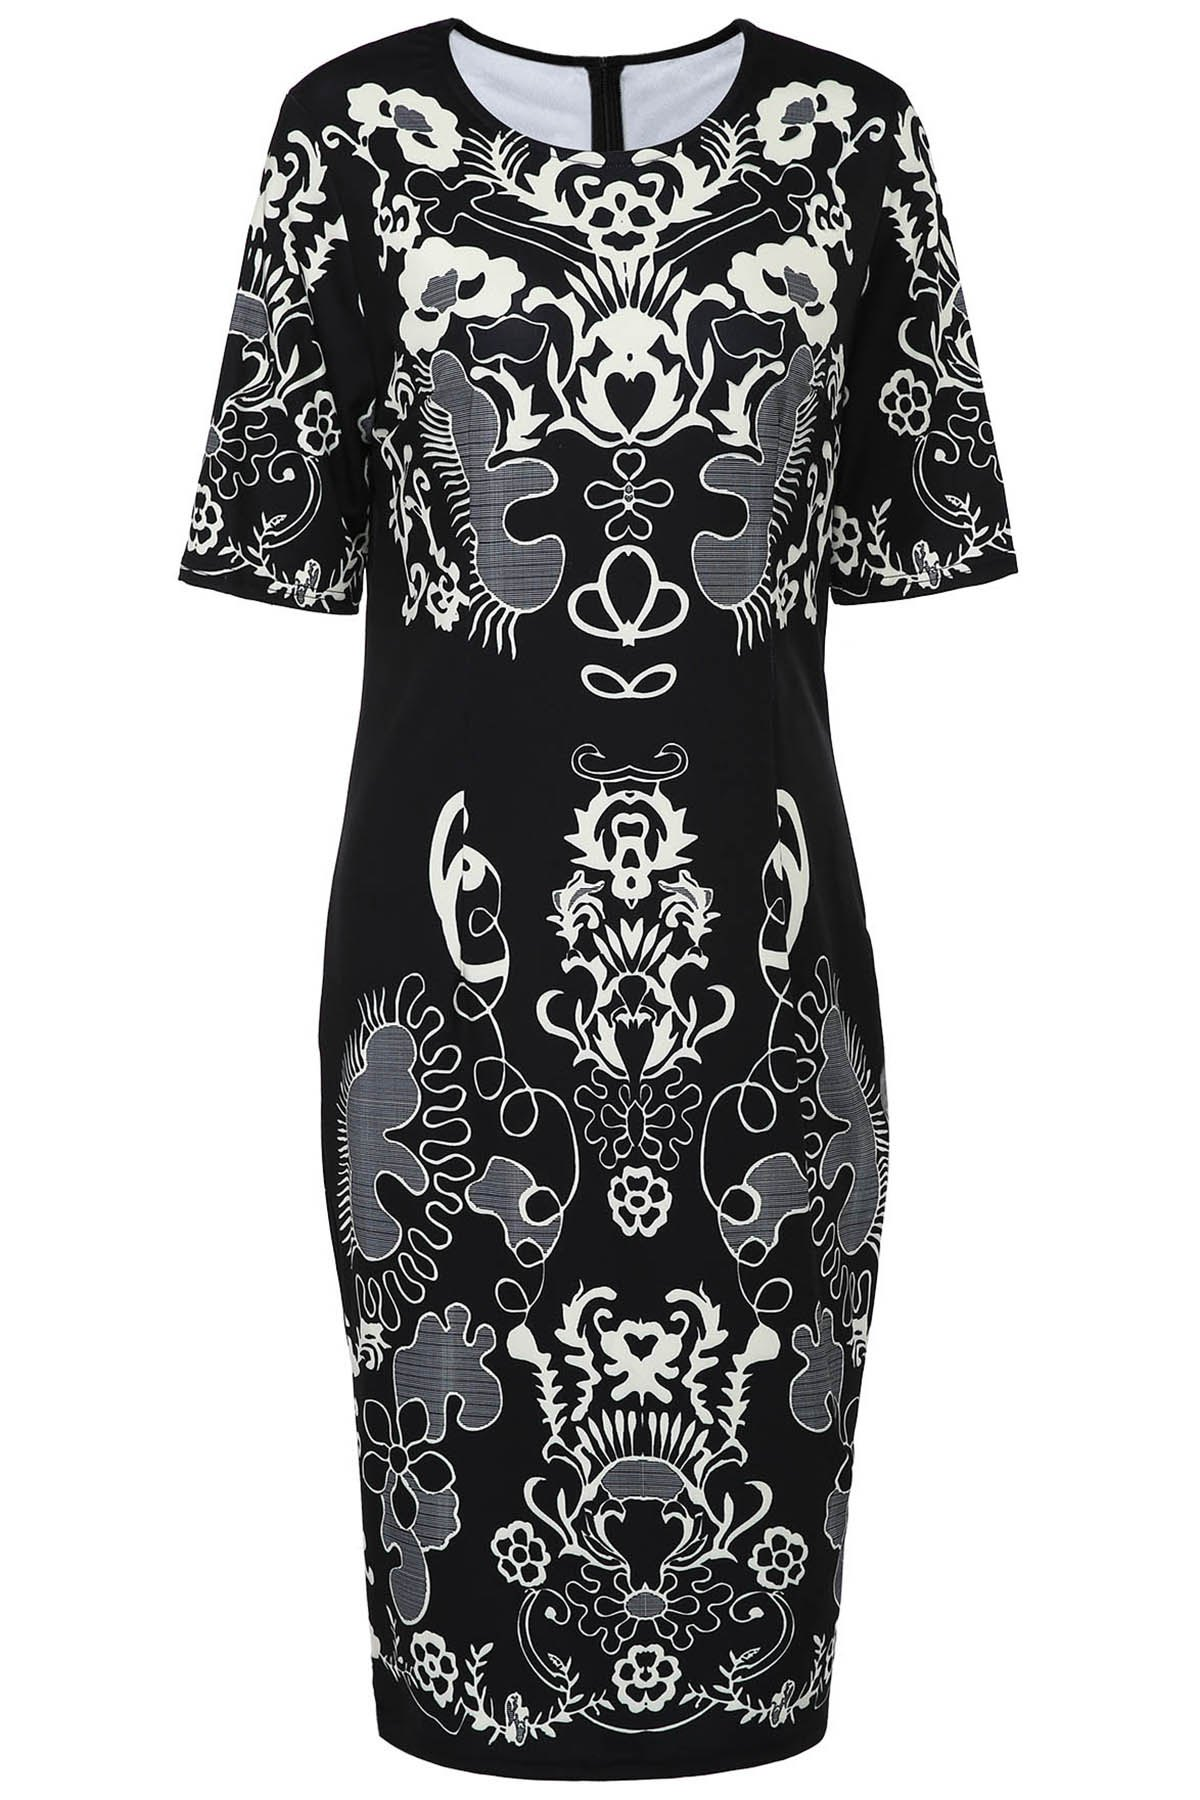 Retro Style Round Neck Short Sleeve Printed Sheathy Women's Prom Dress - WHITE/BLACK M